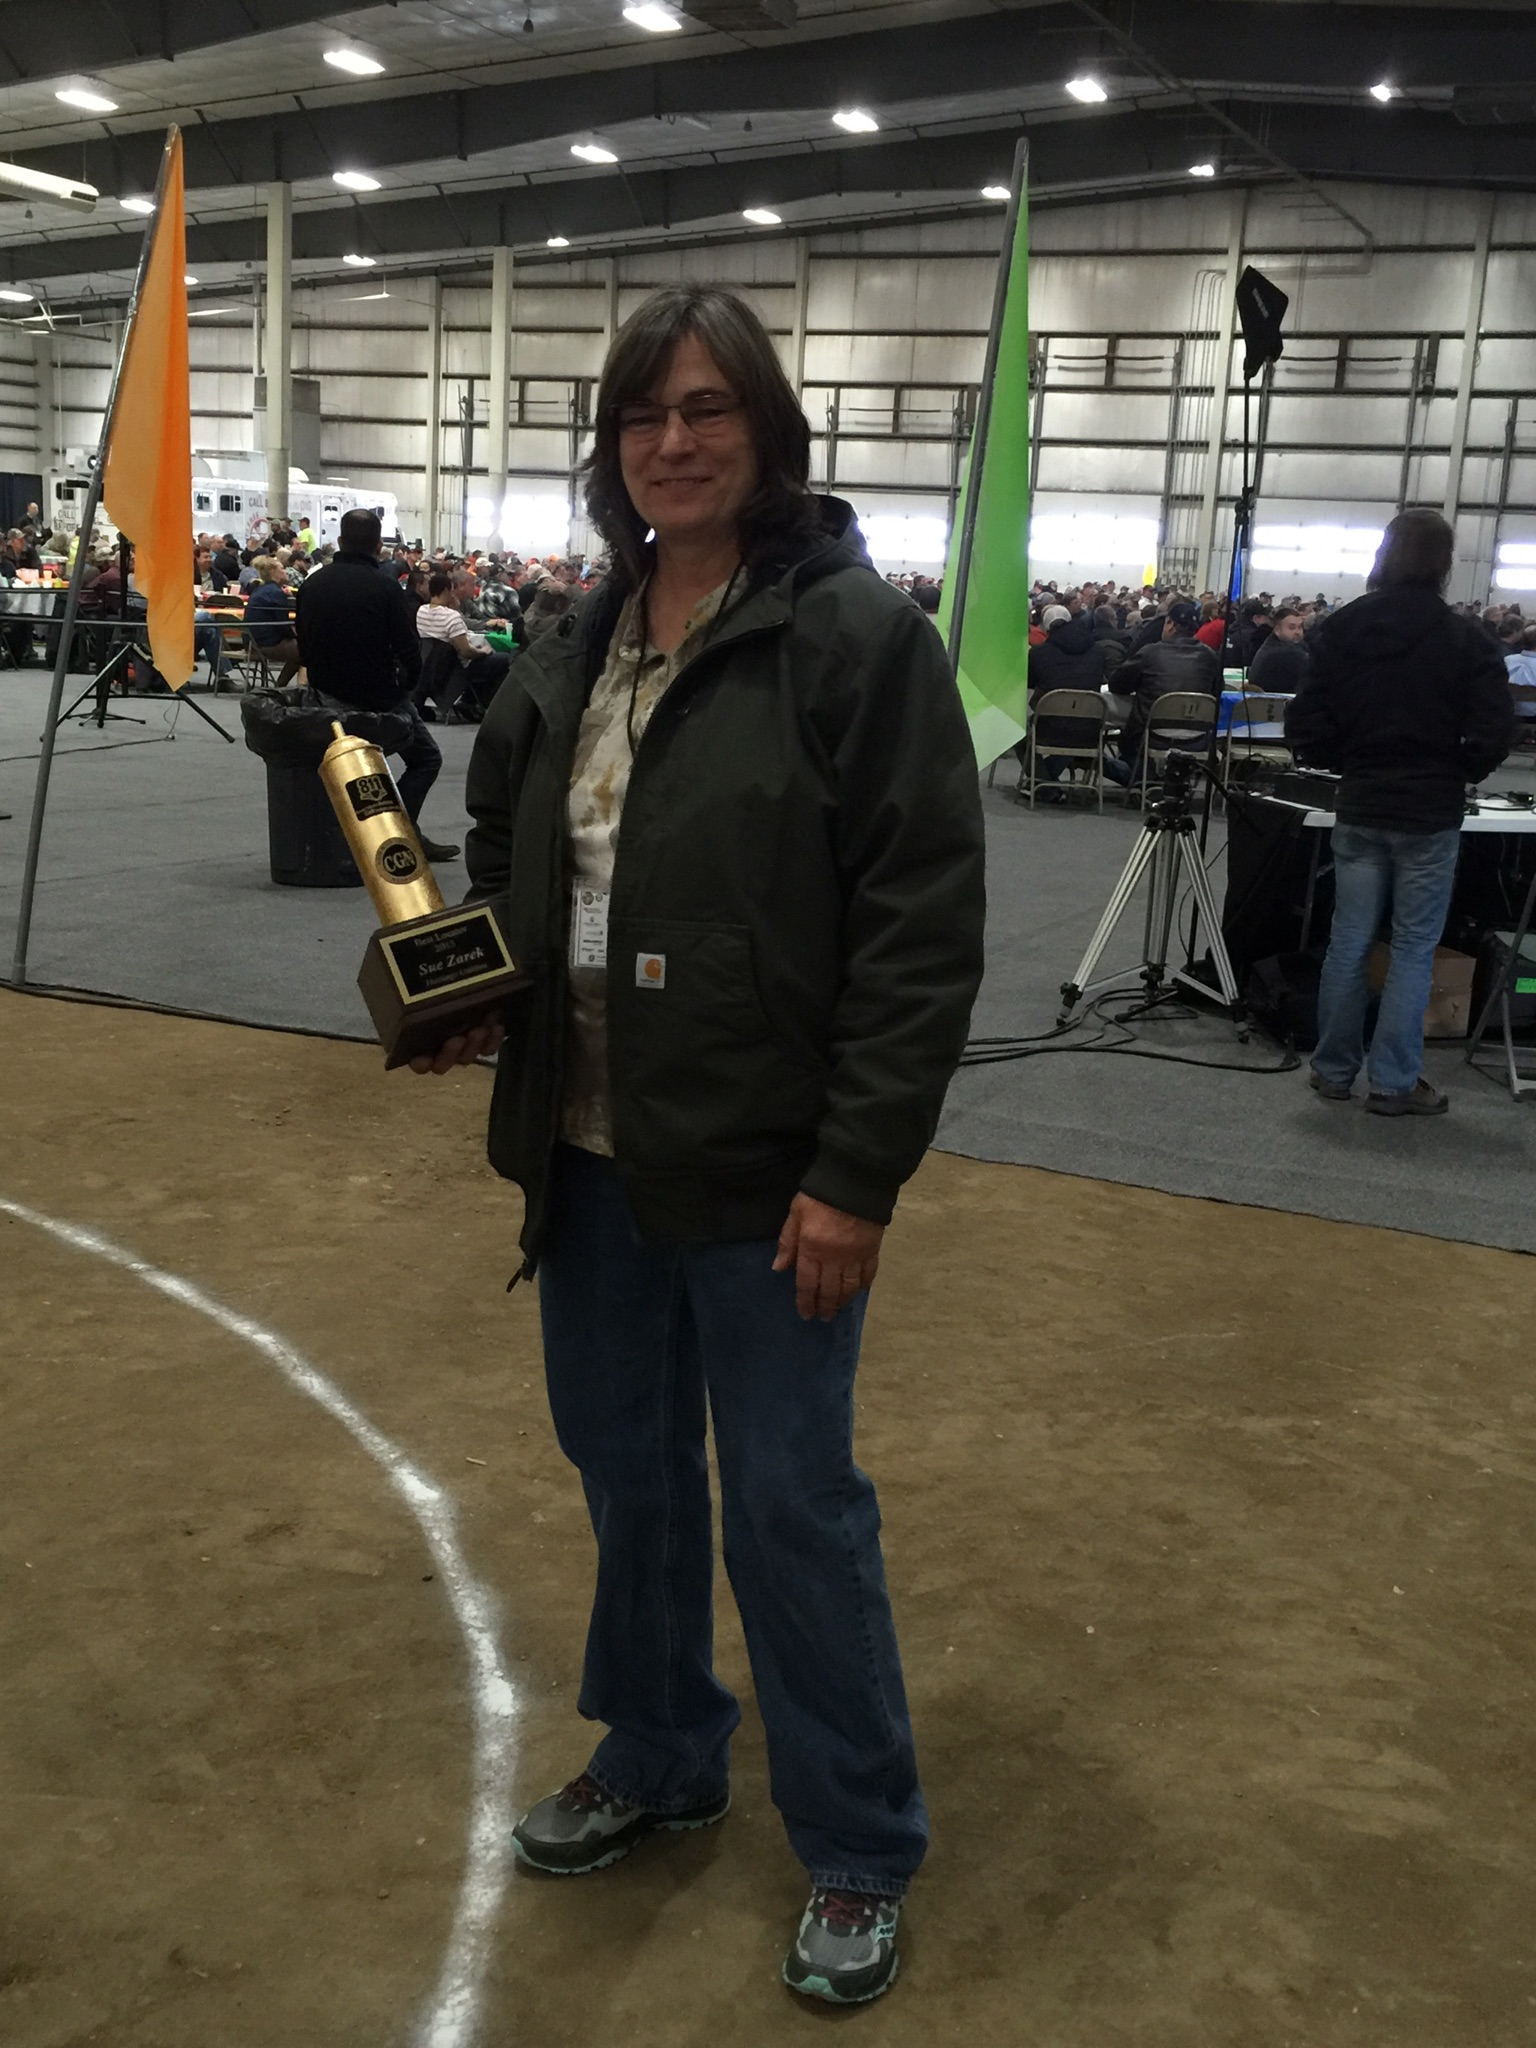 2015 - sue zarek, hastings utilities, locator of the year